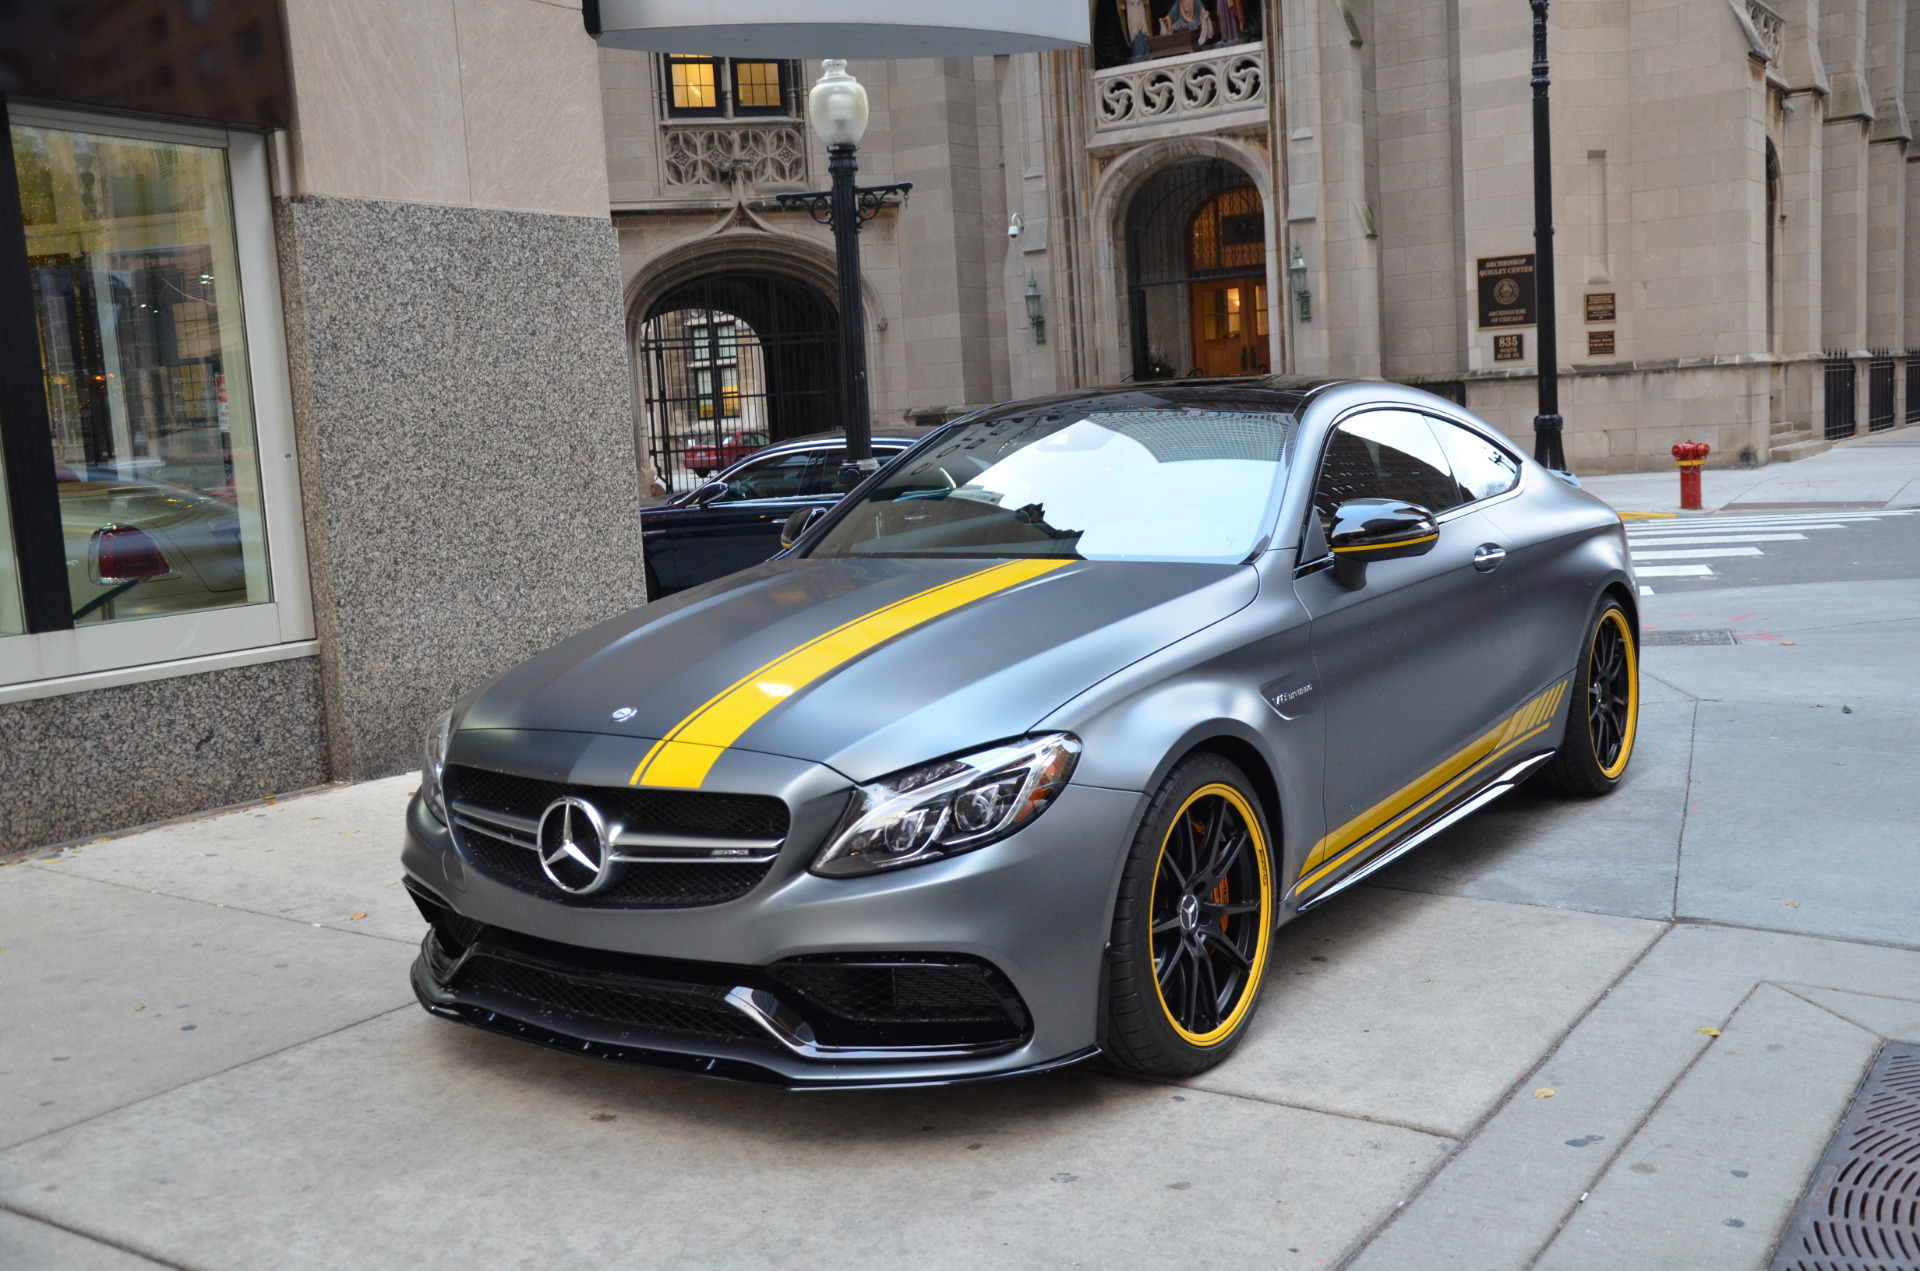 2017 mercedes benz c class amg c63 s stock b871a for sale near chicago il il mercedes benz. Black Bedroom Furniture Sets. Home Design Ideas